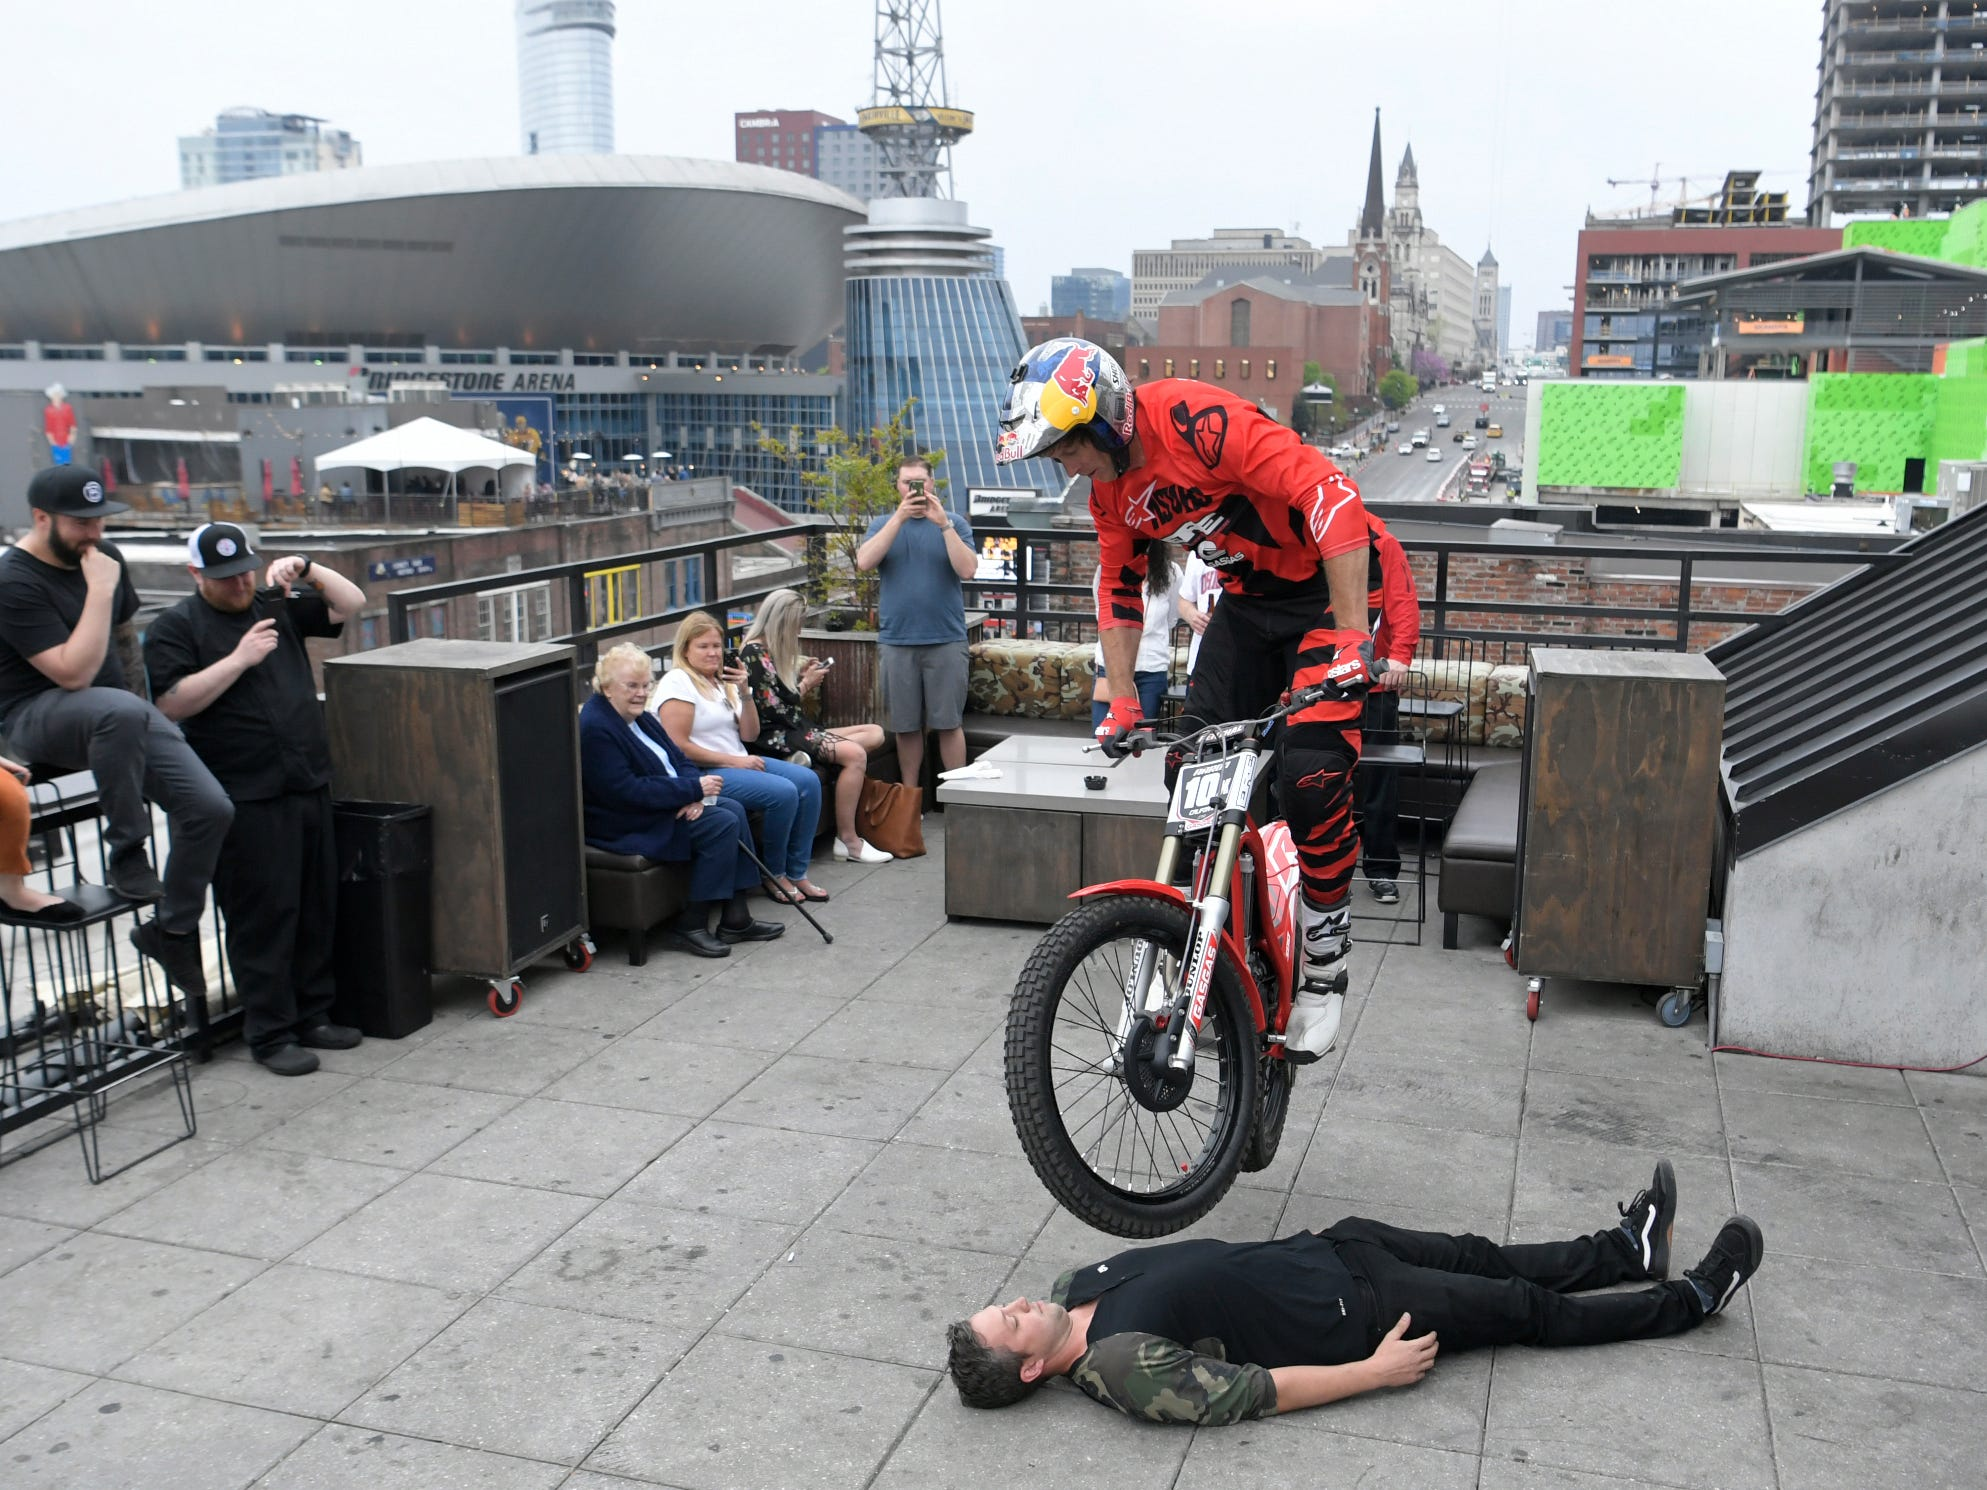 Trial motorcyclist Geoff Aaron performs stunts on the rooftop of Dierks Bentley's Whiskey Row on Broadway on Thursday, April 4, 2019. The trials and endurocross legend is in town for the Motocross-Supercross event.